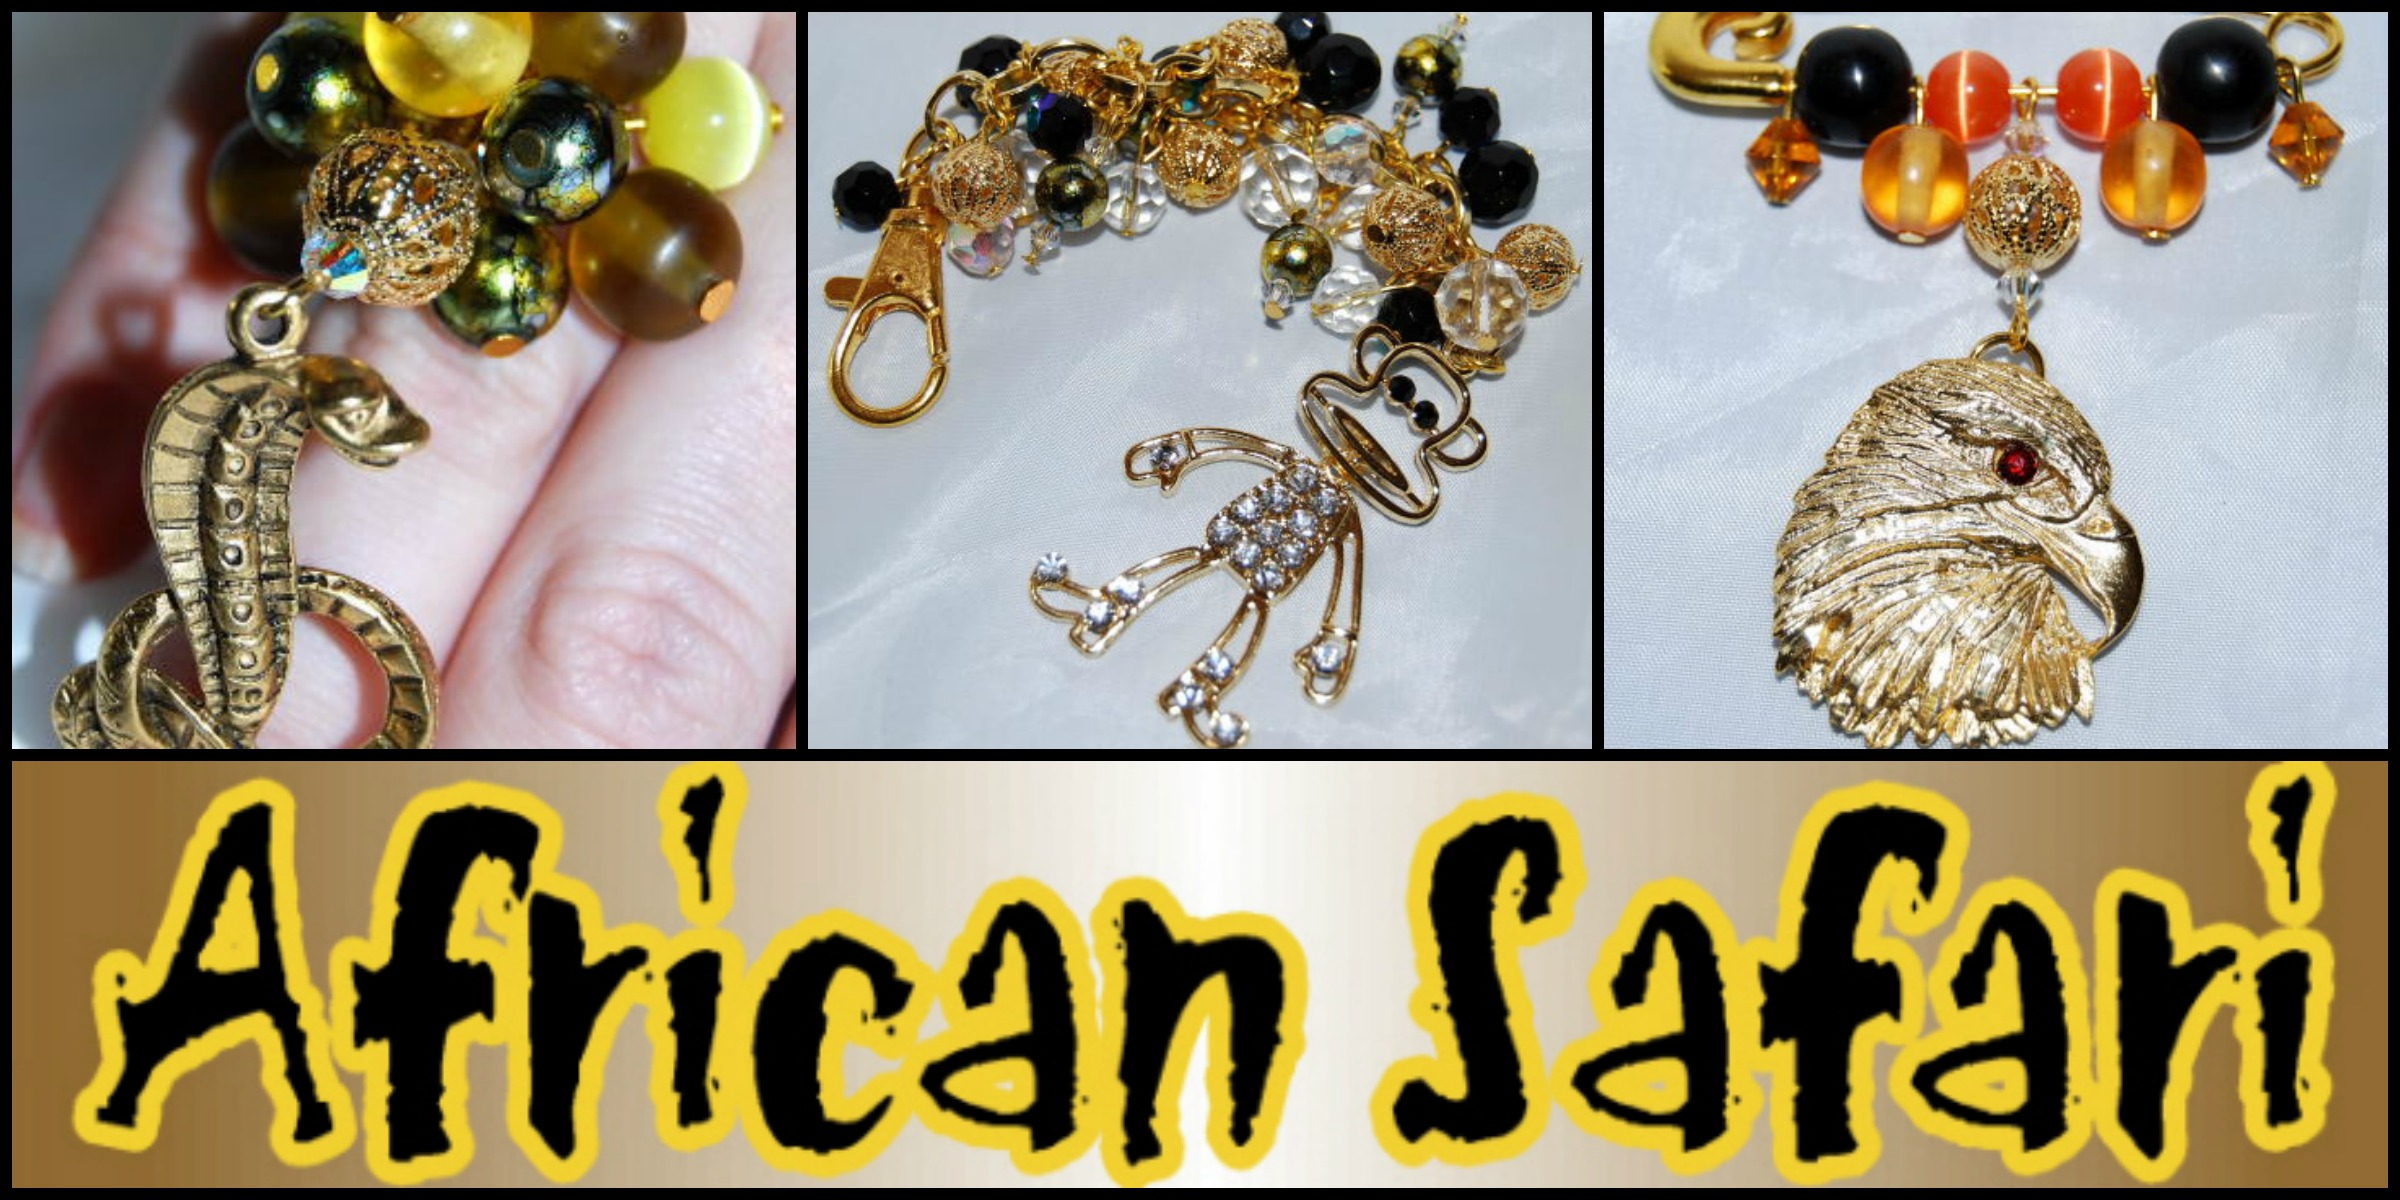 AFRICAN SAFARI: Still available from Jewel Divas